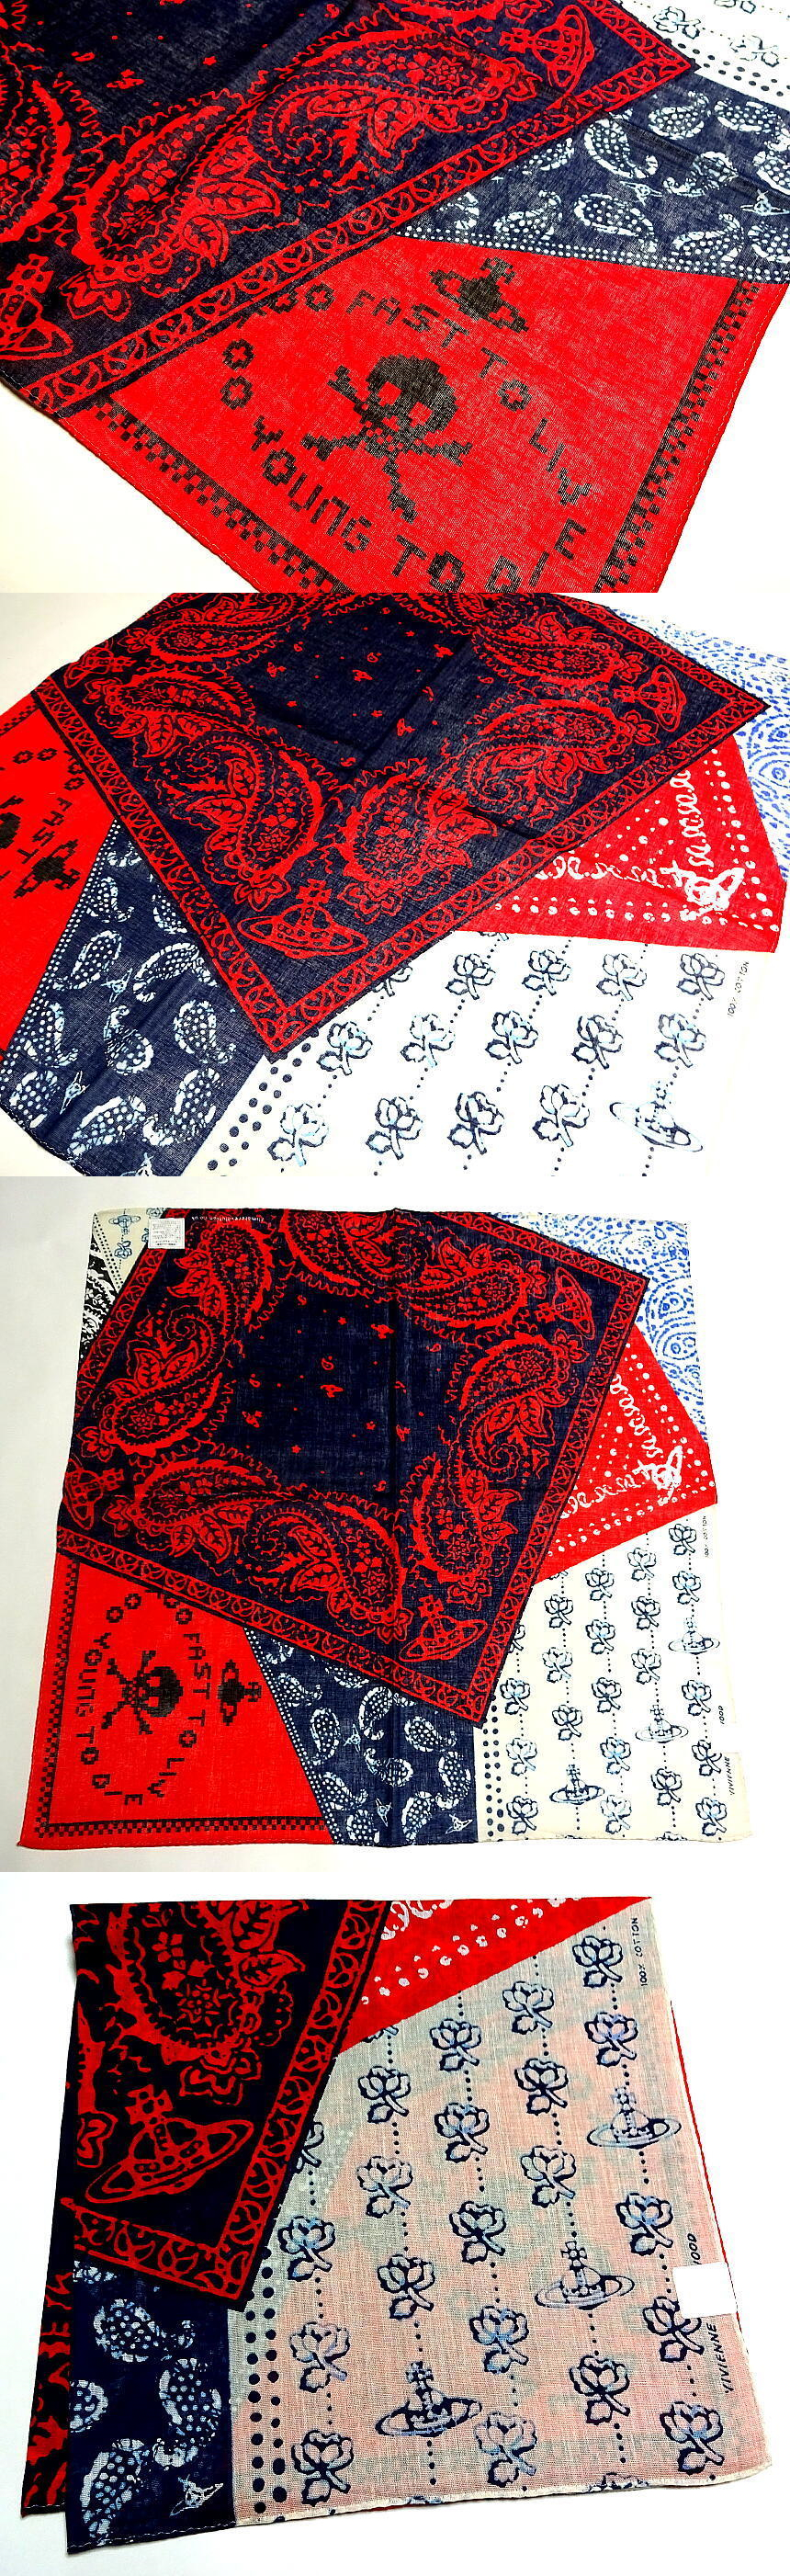 Handkerchiefs 167906: Vivienne Westwood Handkerchief Scarf Bandana Cotton Blue Red Orb L Auth New -> BUY IT NOW ONLY: $32 on eBay!